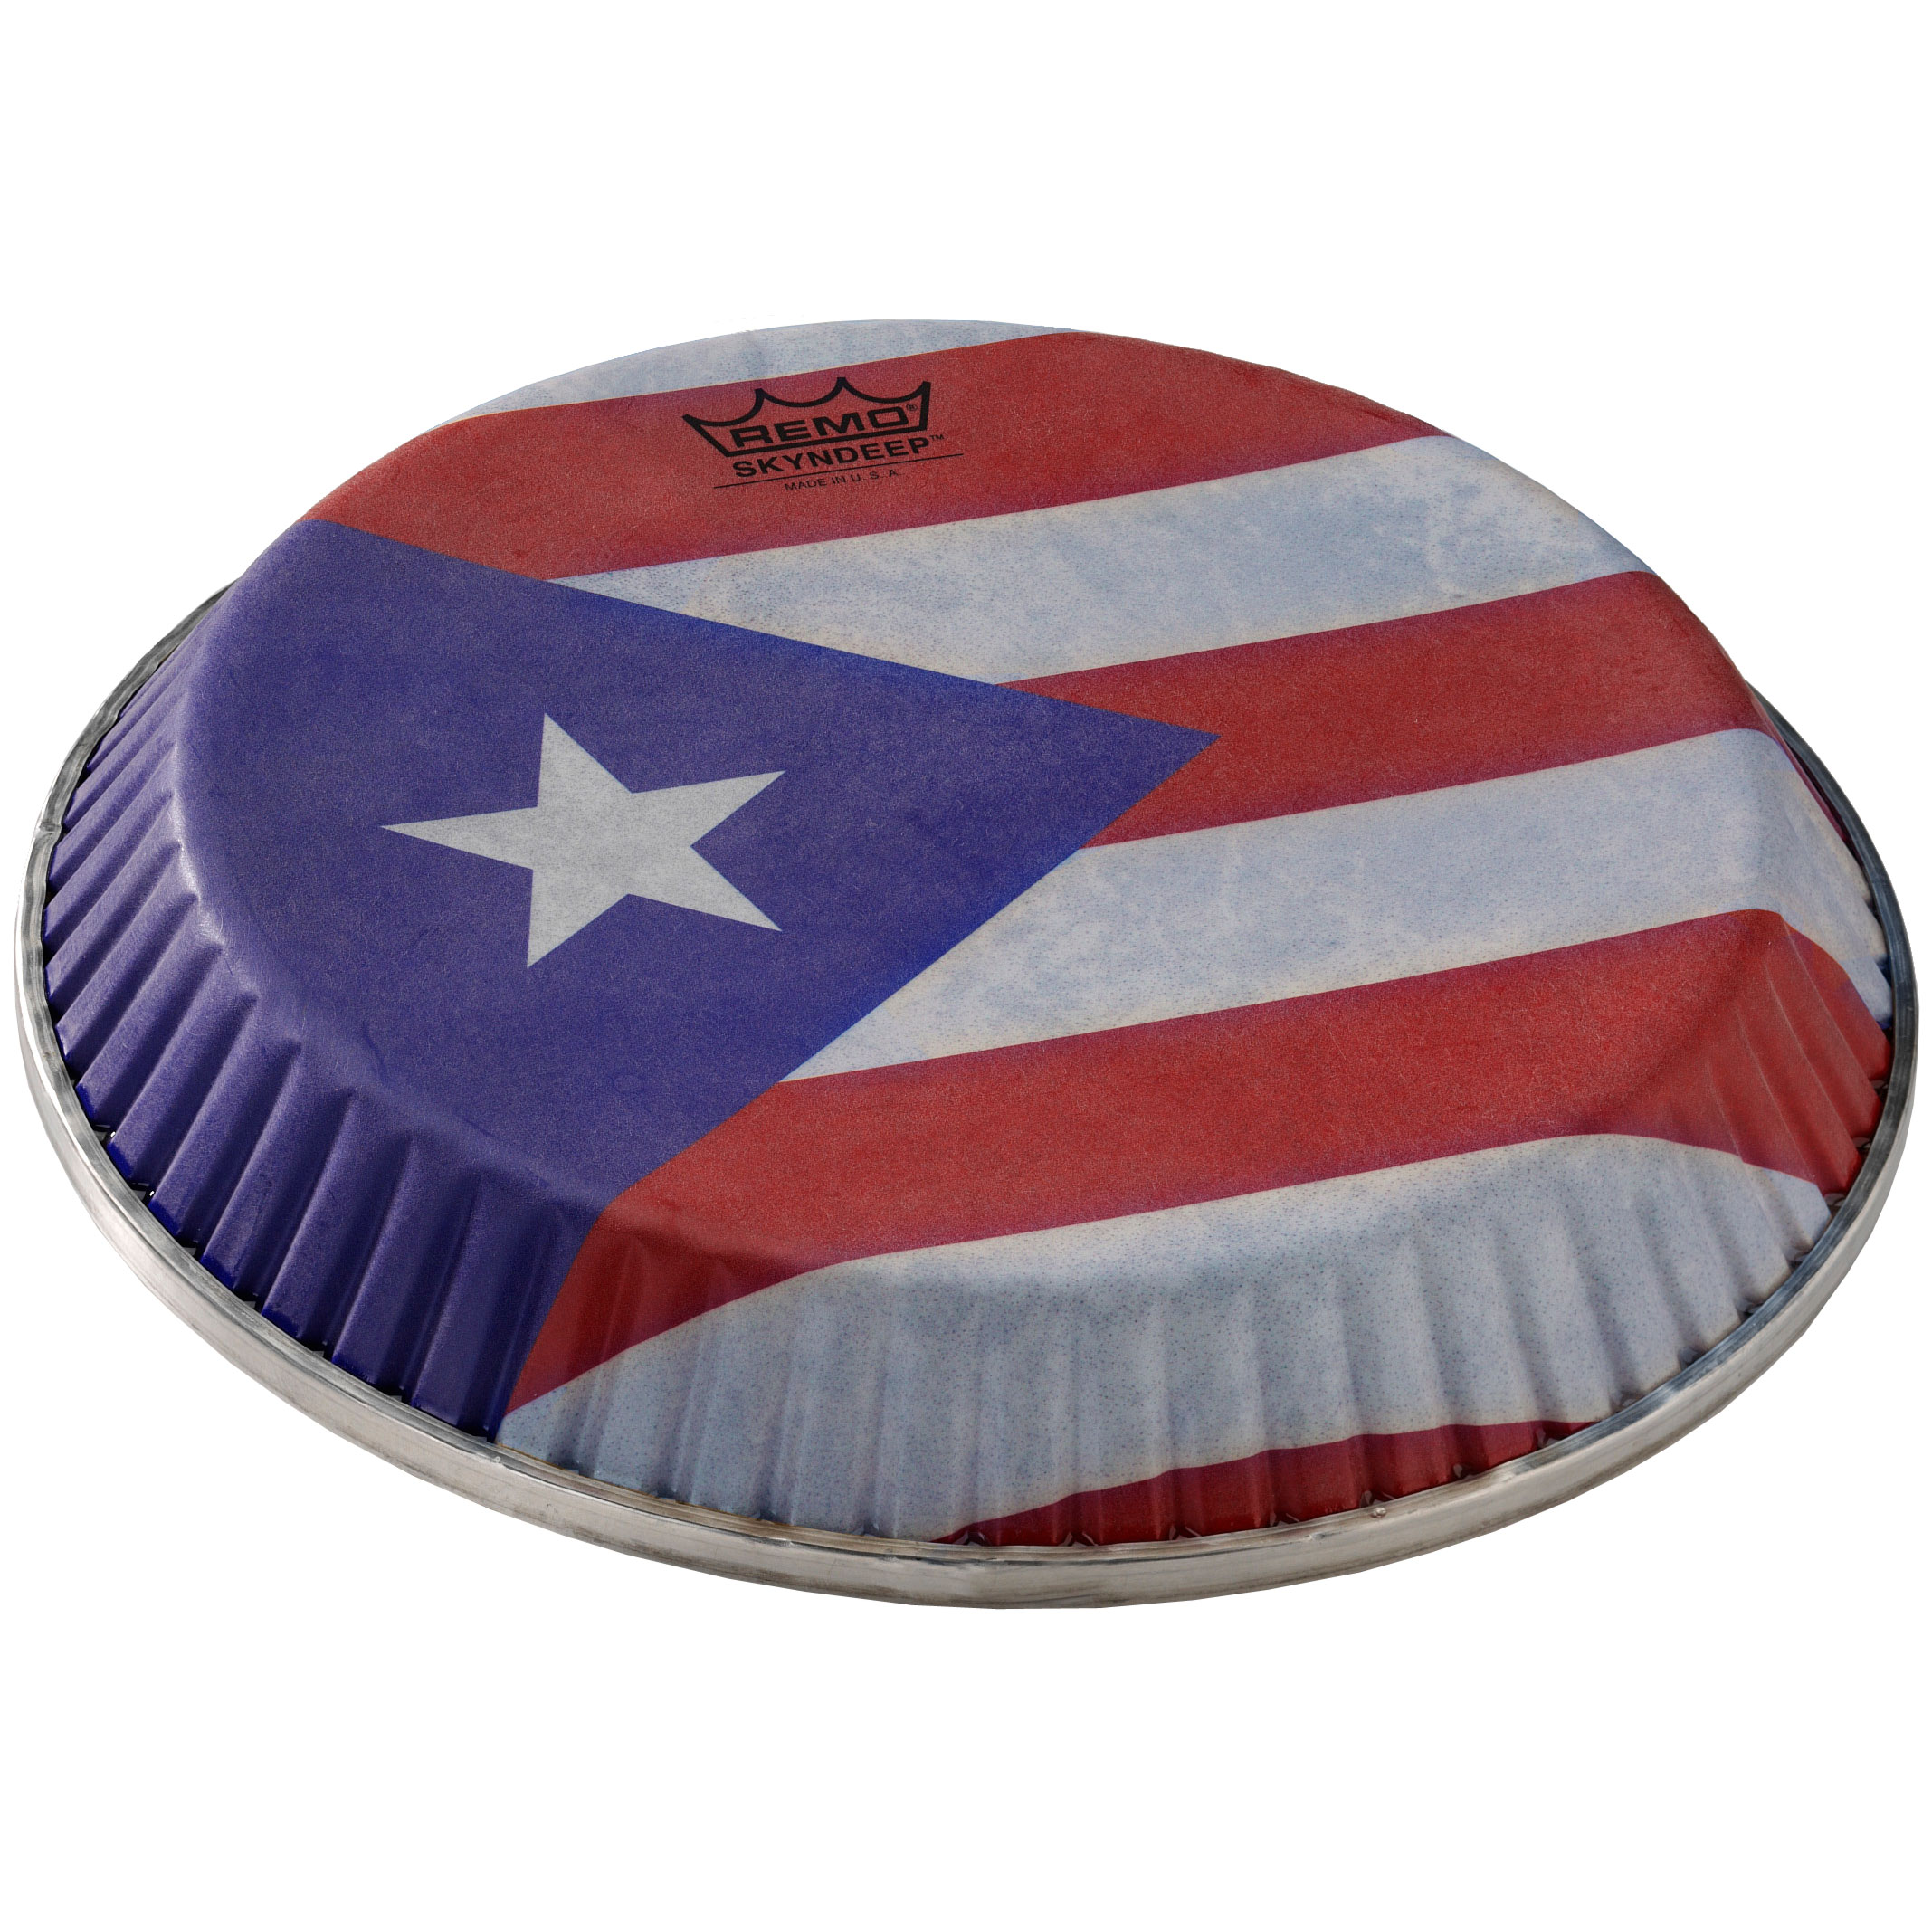 "Remo 10.75"" Symmetry Skyndeep Conga Drum Head (D3 Collar) with Puerto Rican Flag Graphic"